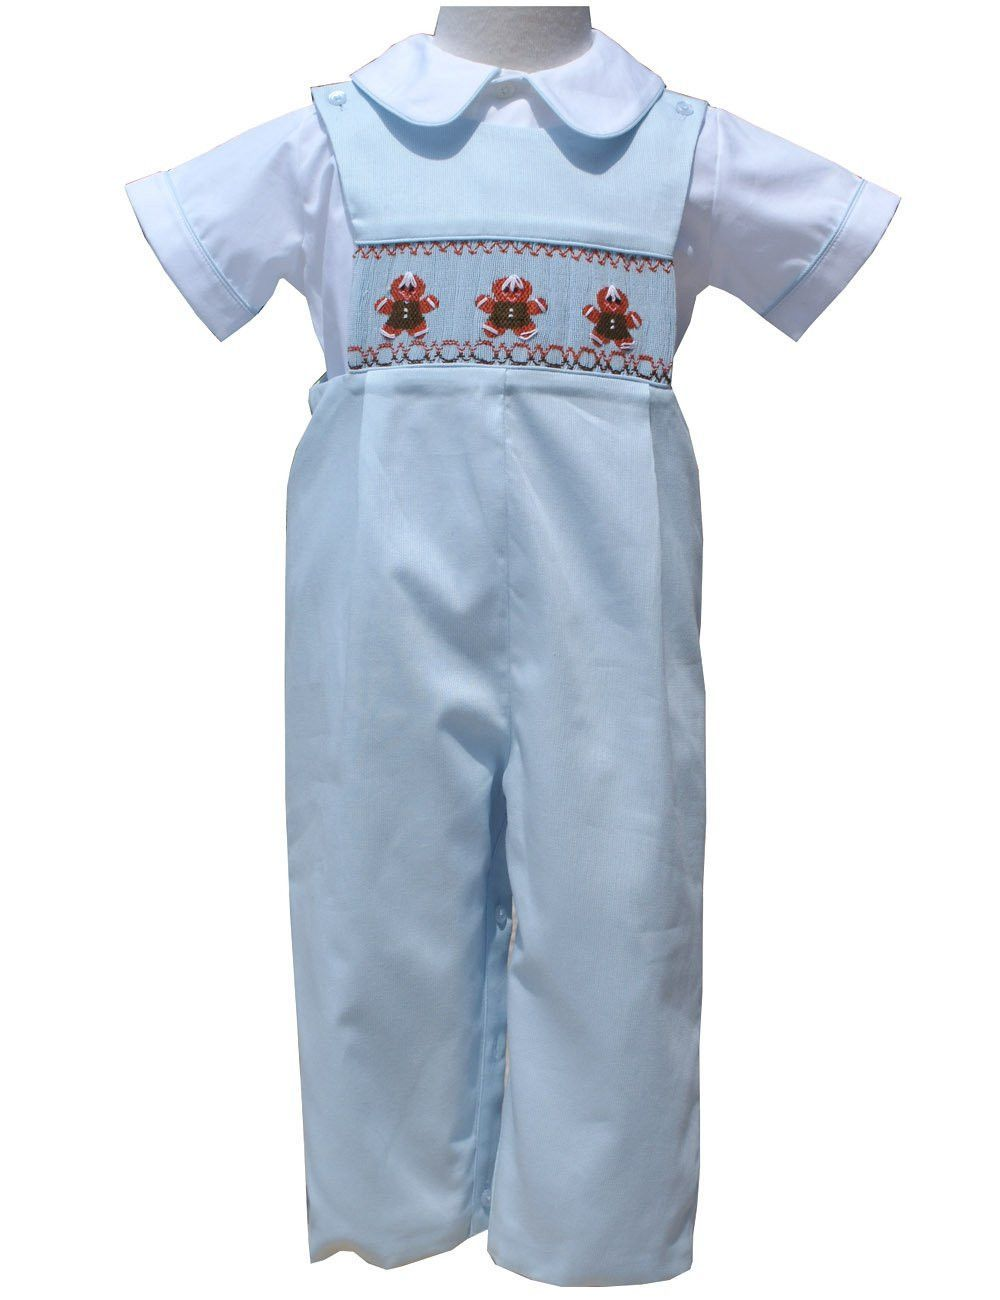 8561222712c1 Gingerbread Boy Christmas Smocked Longall | For my babies | Boys ...